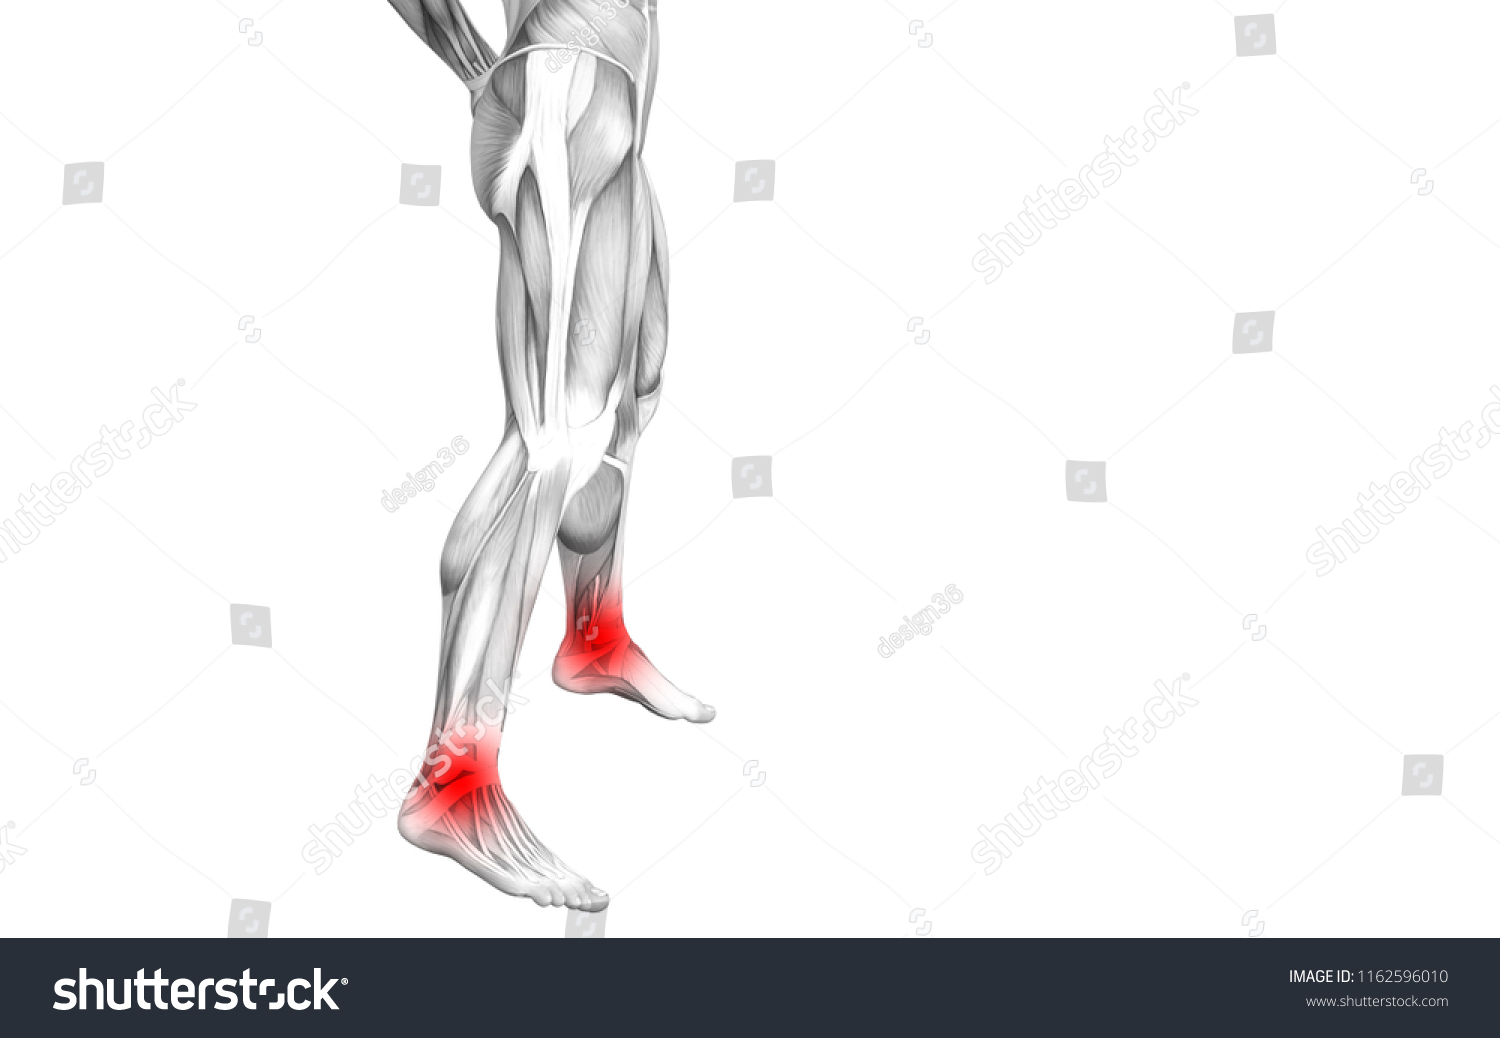 Royalty Free Stock Illustration of Conceptual Ankle Human Anatomy ...